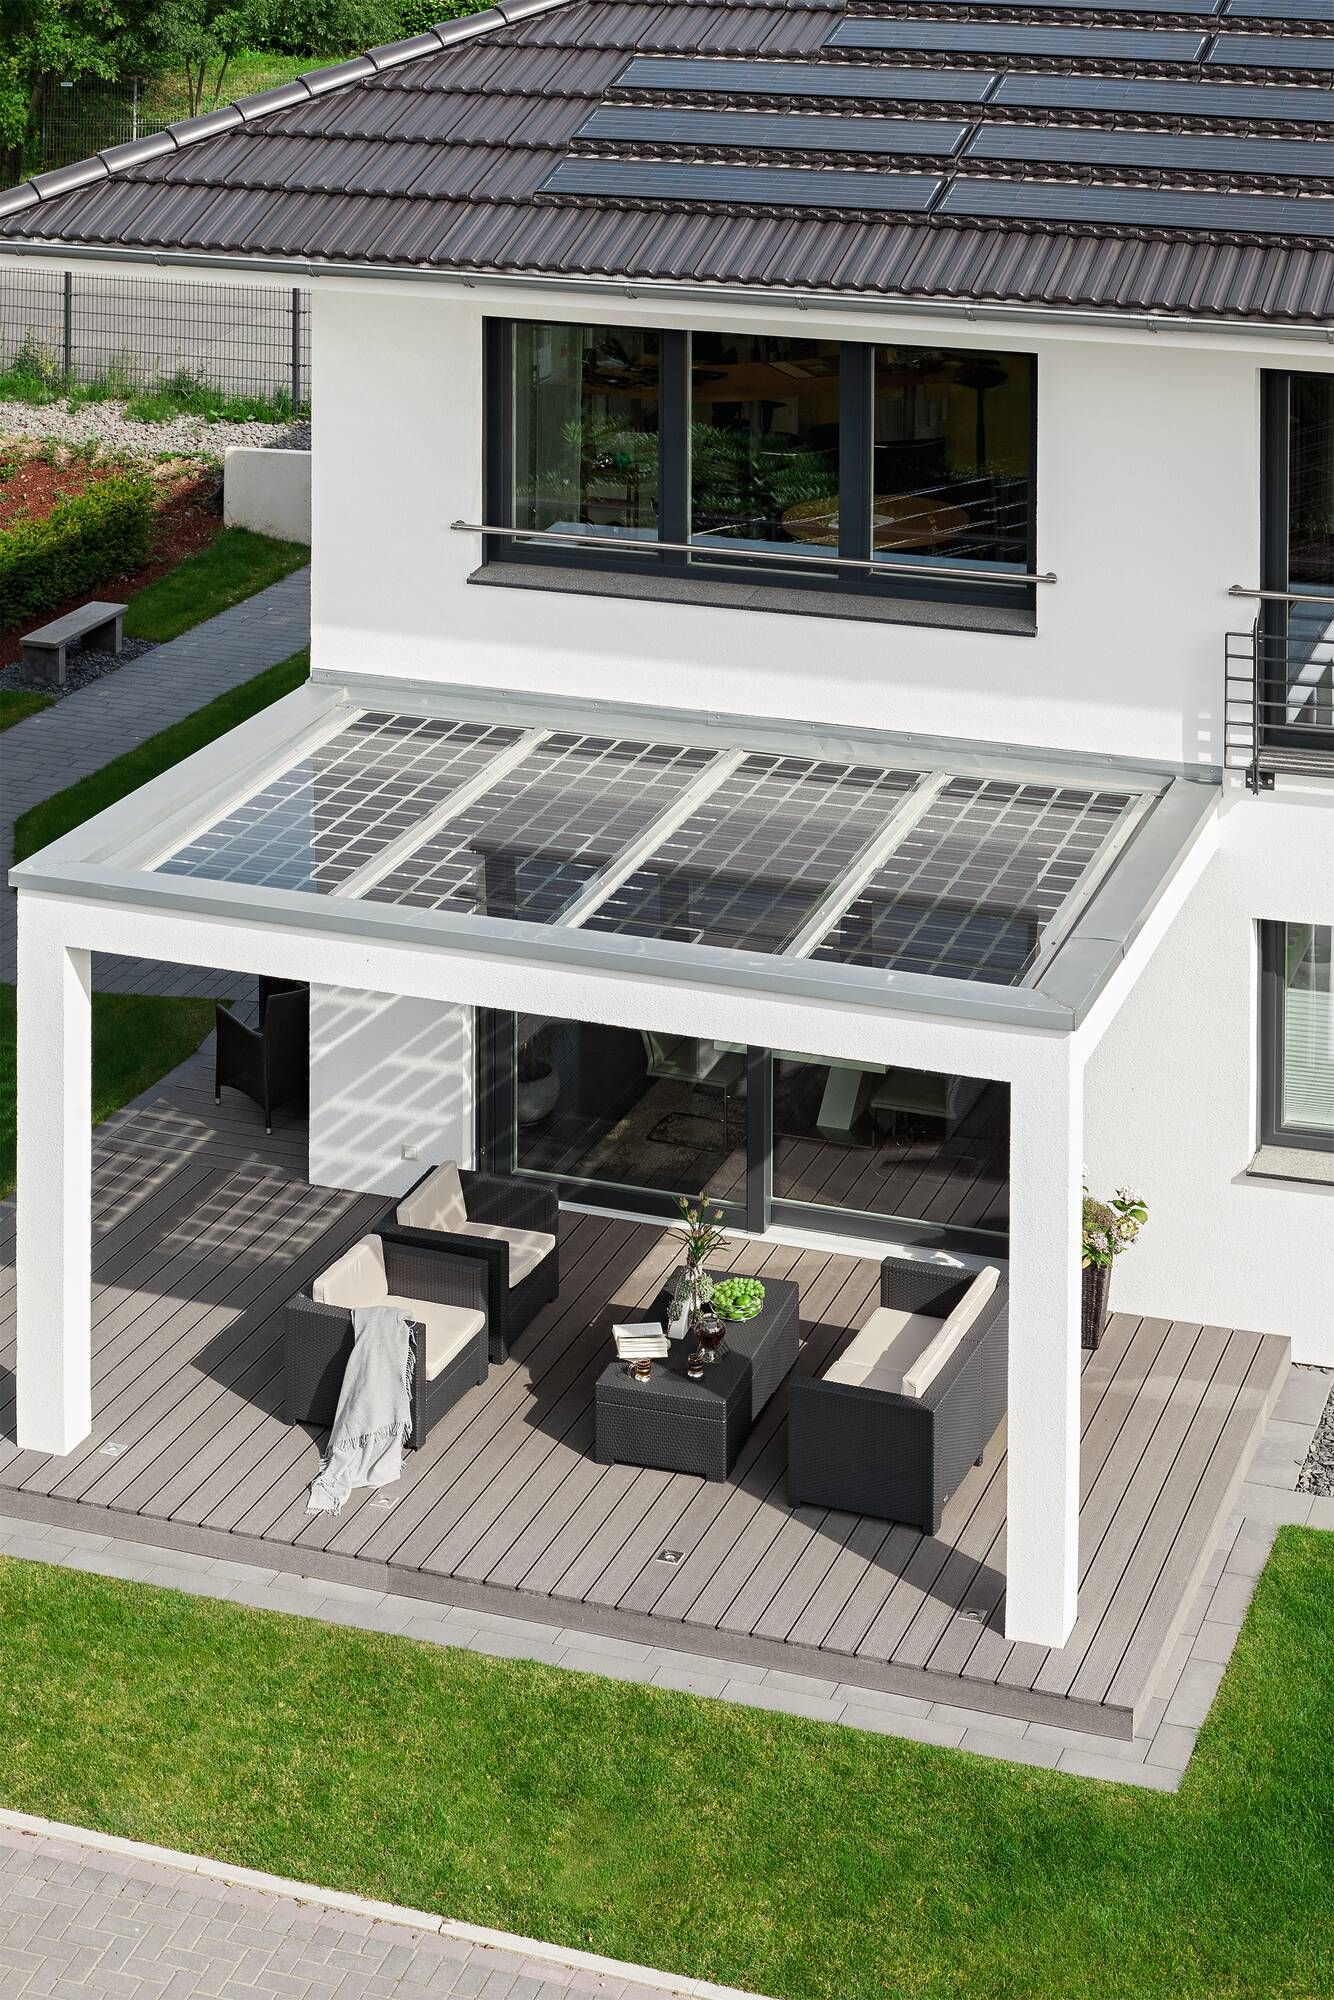 Eco-friendly prefab house with photovoltaic system